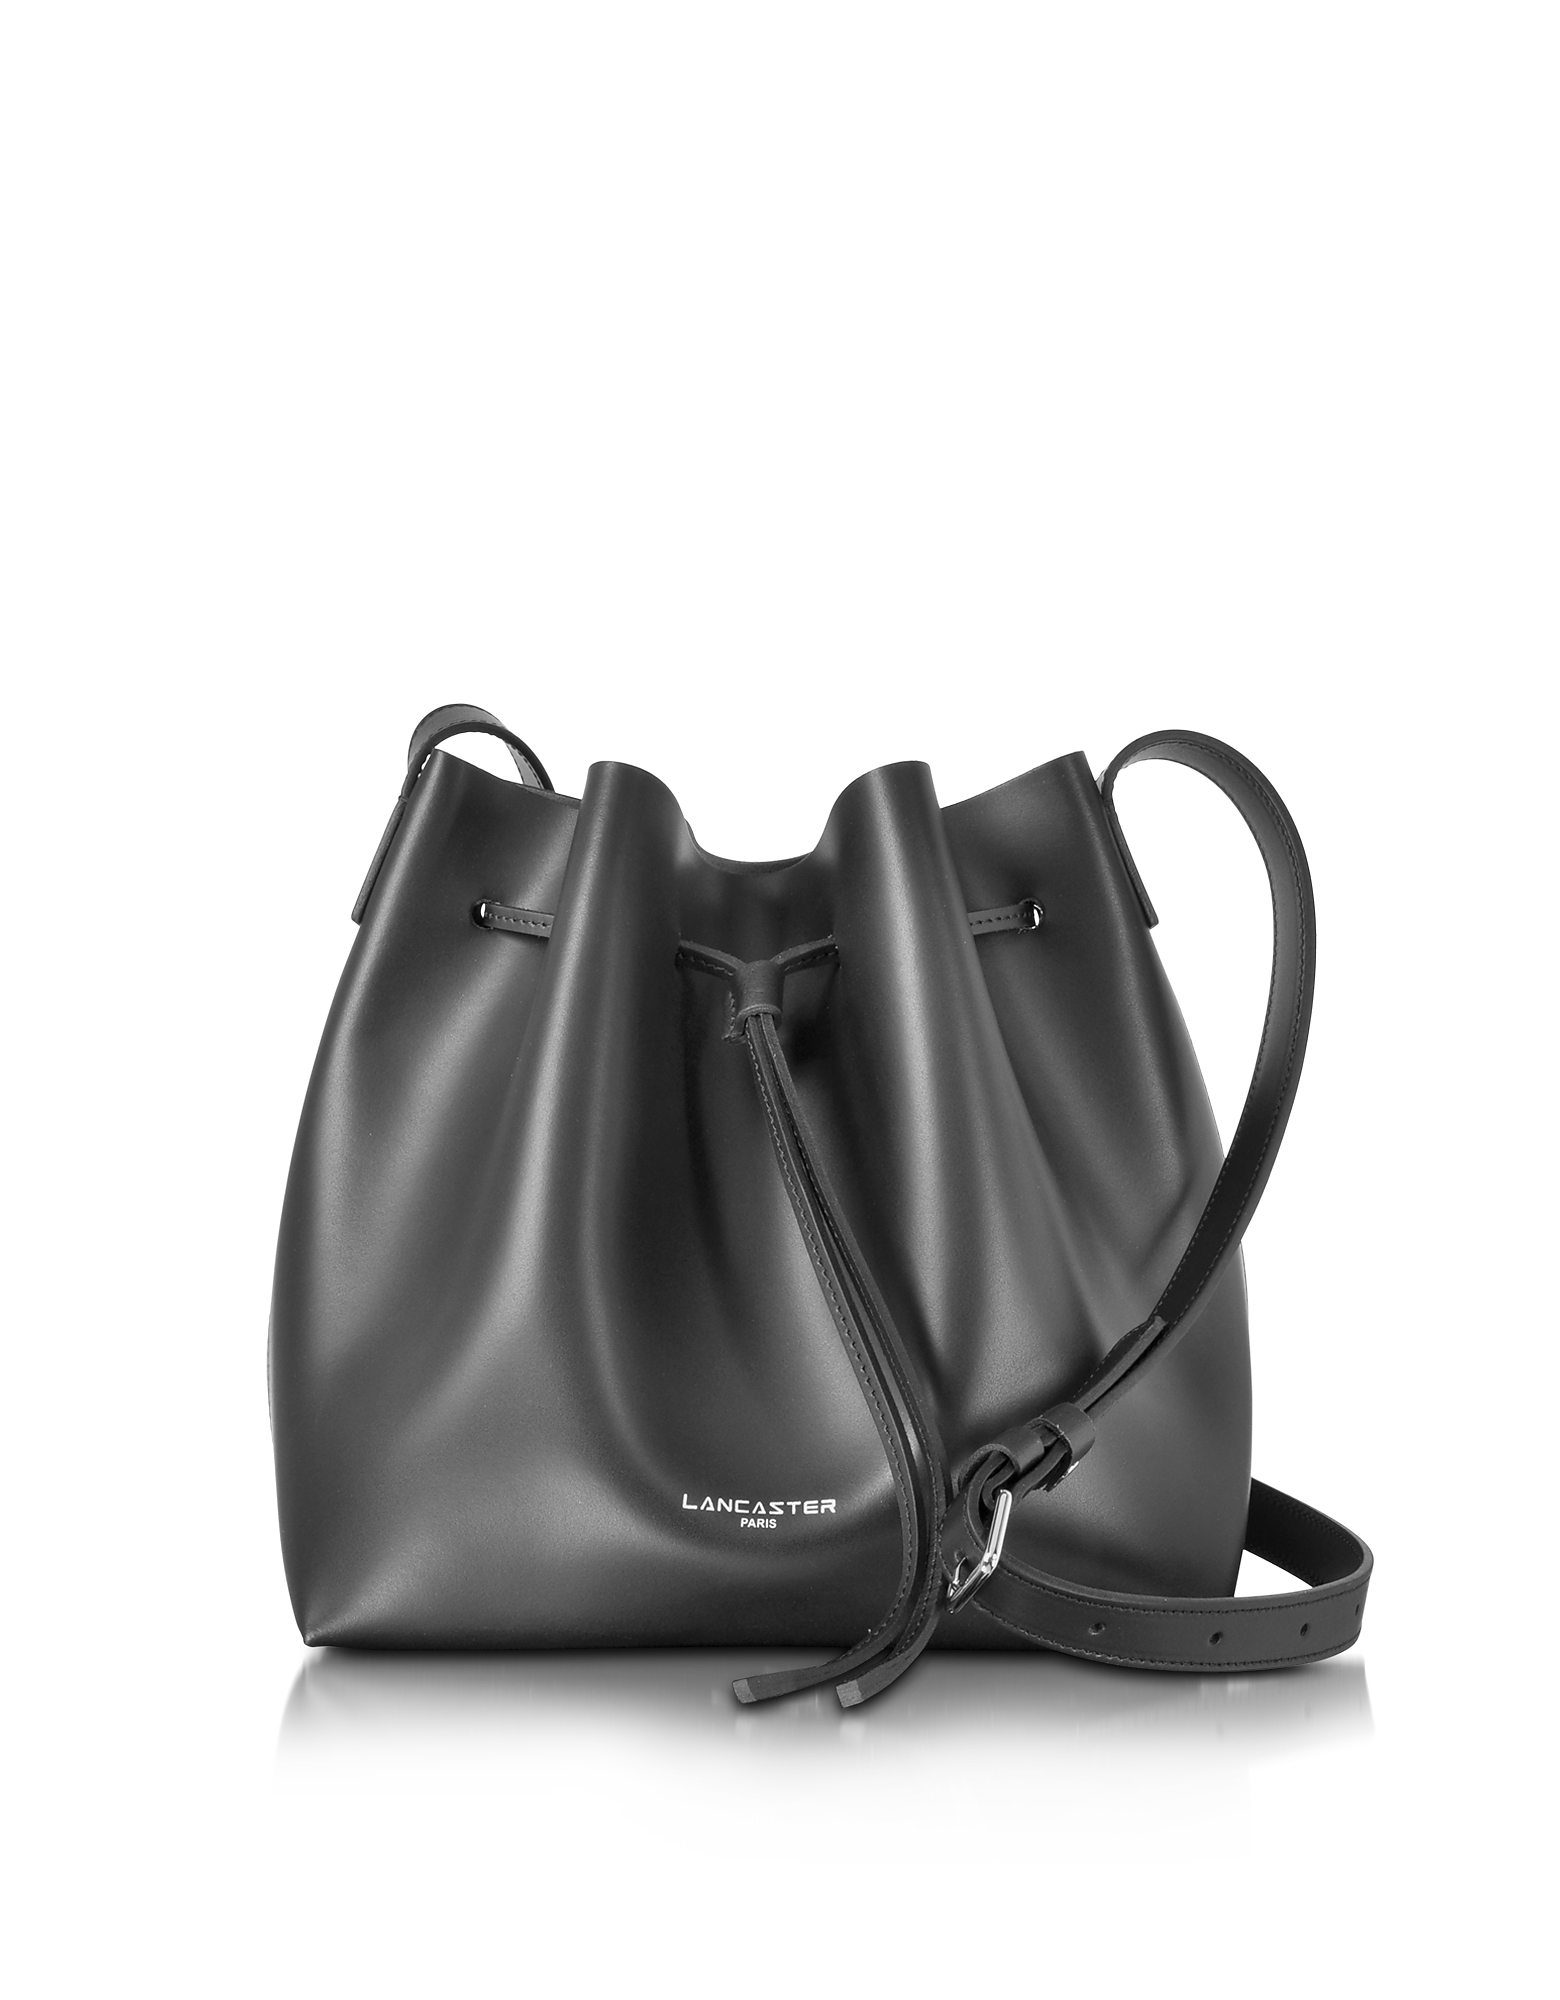 Lancaster Paris Handbags, Pur Smooth Leather Bucket Bag